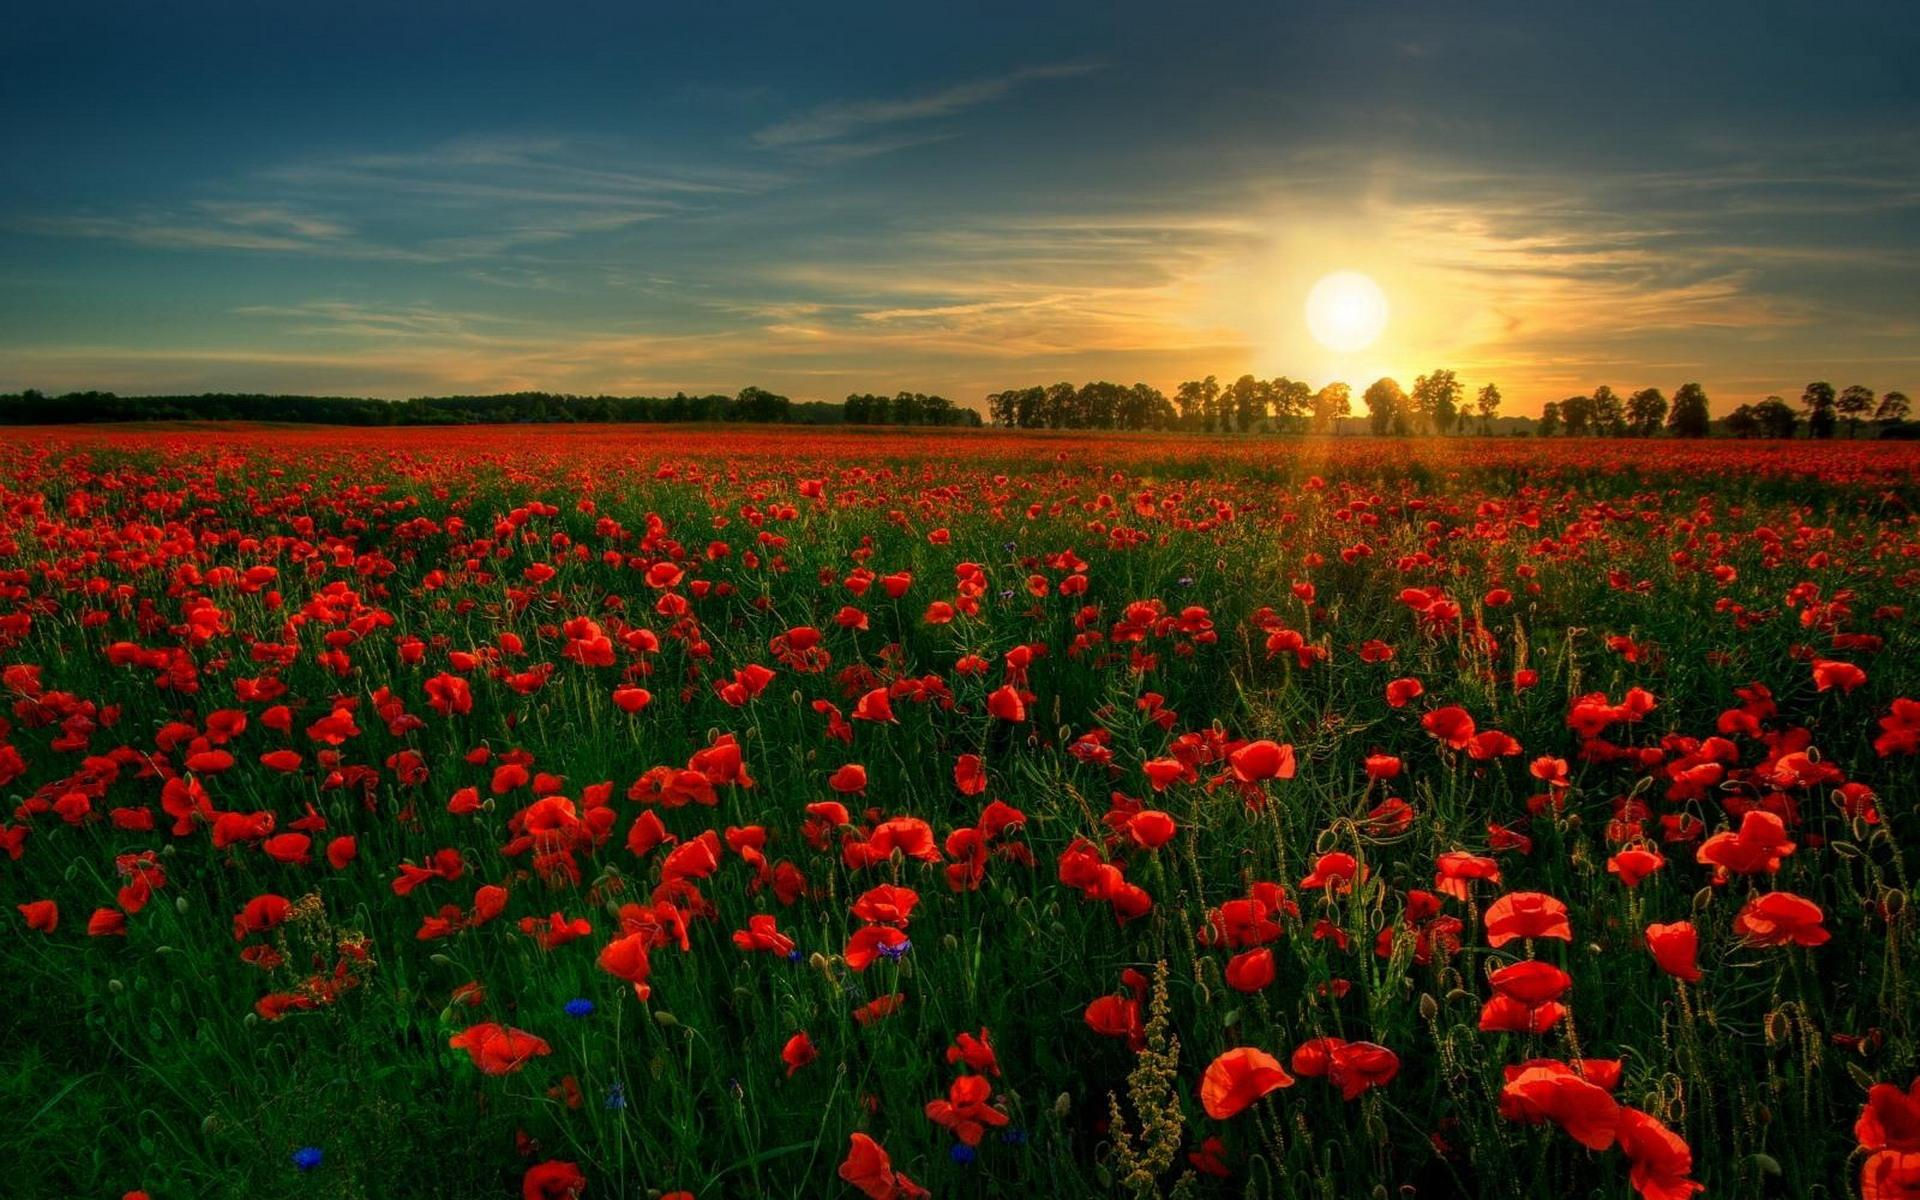 Hd Field Of Red Flowers Wallpaper